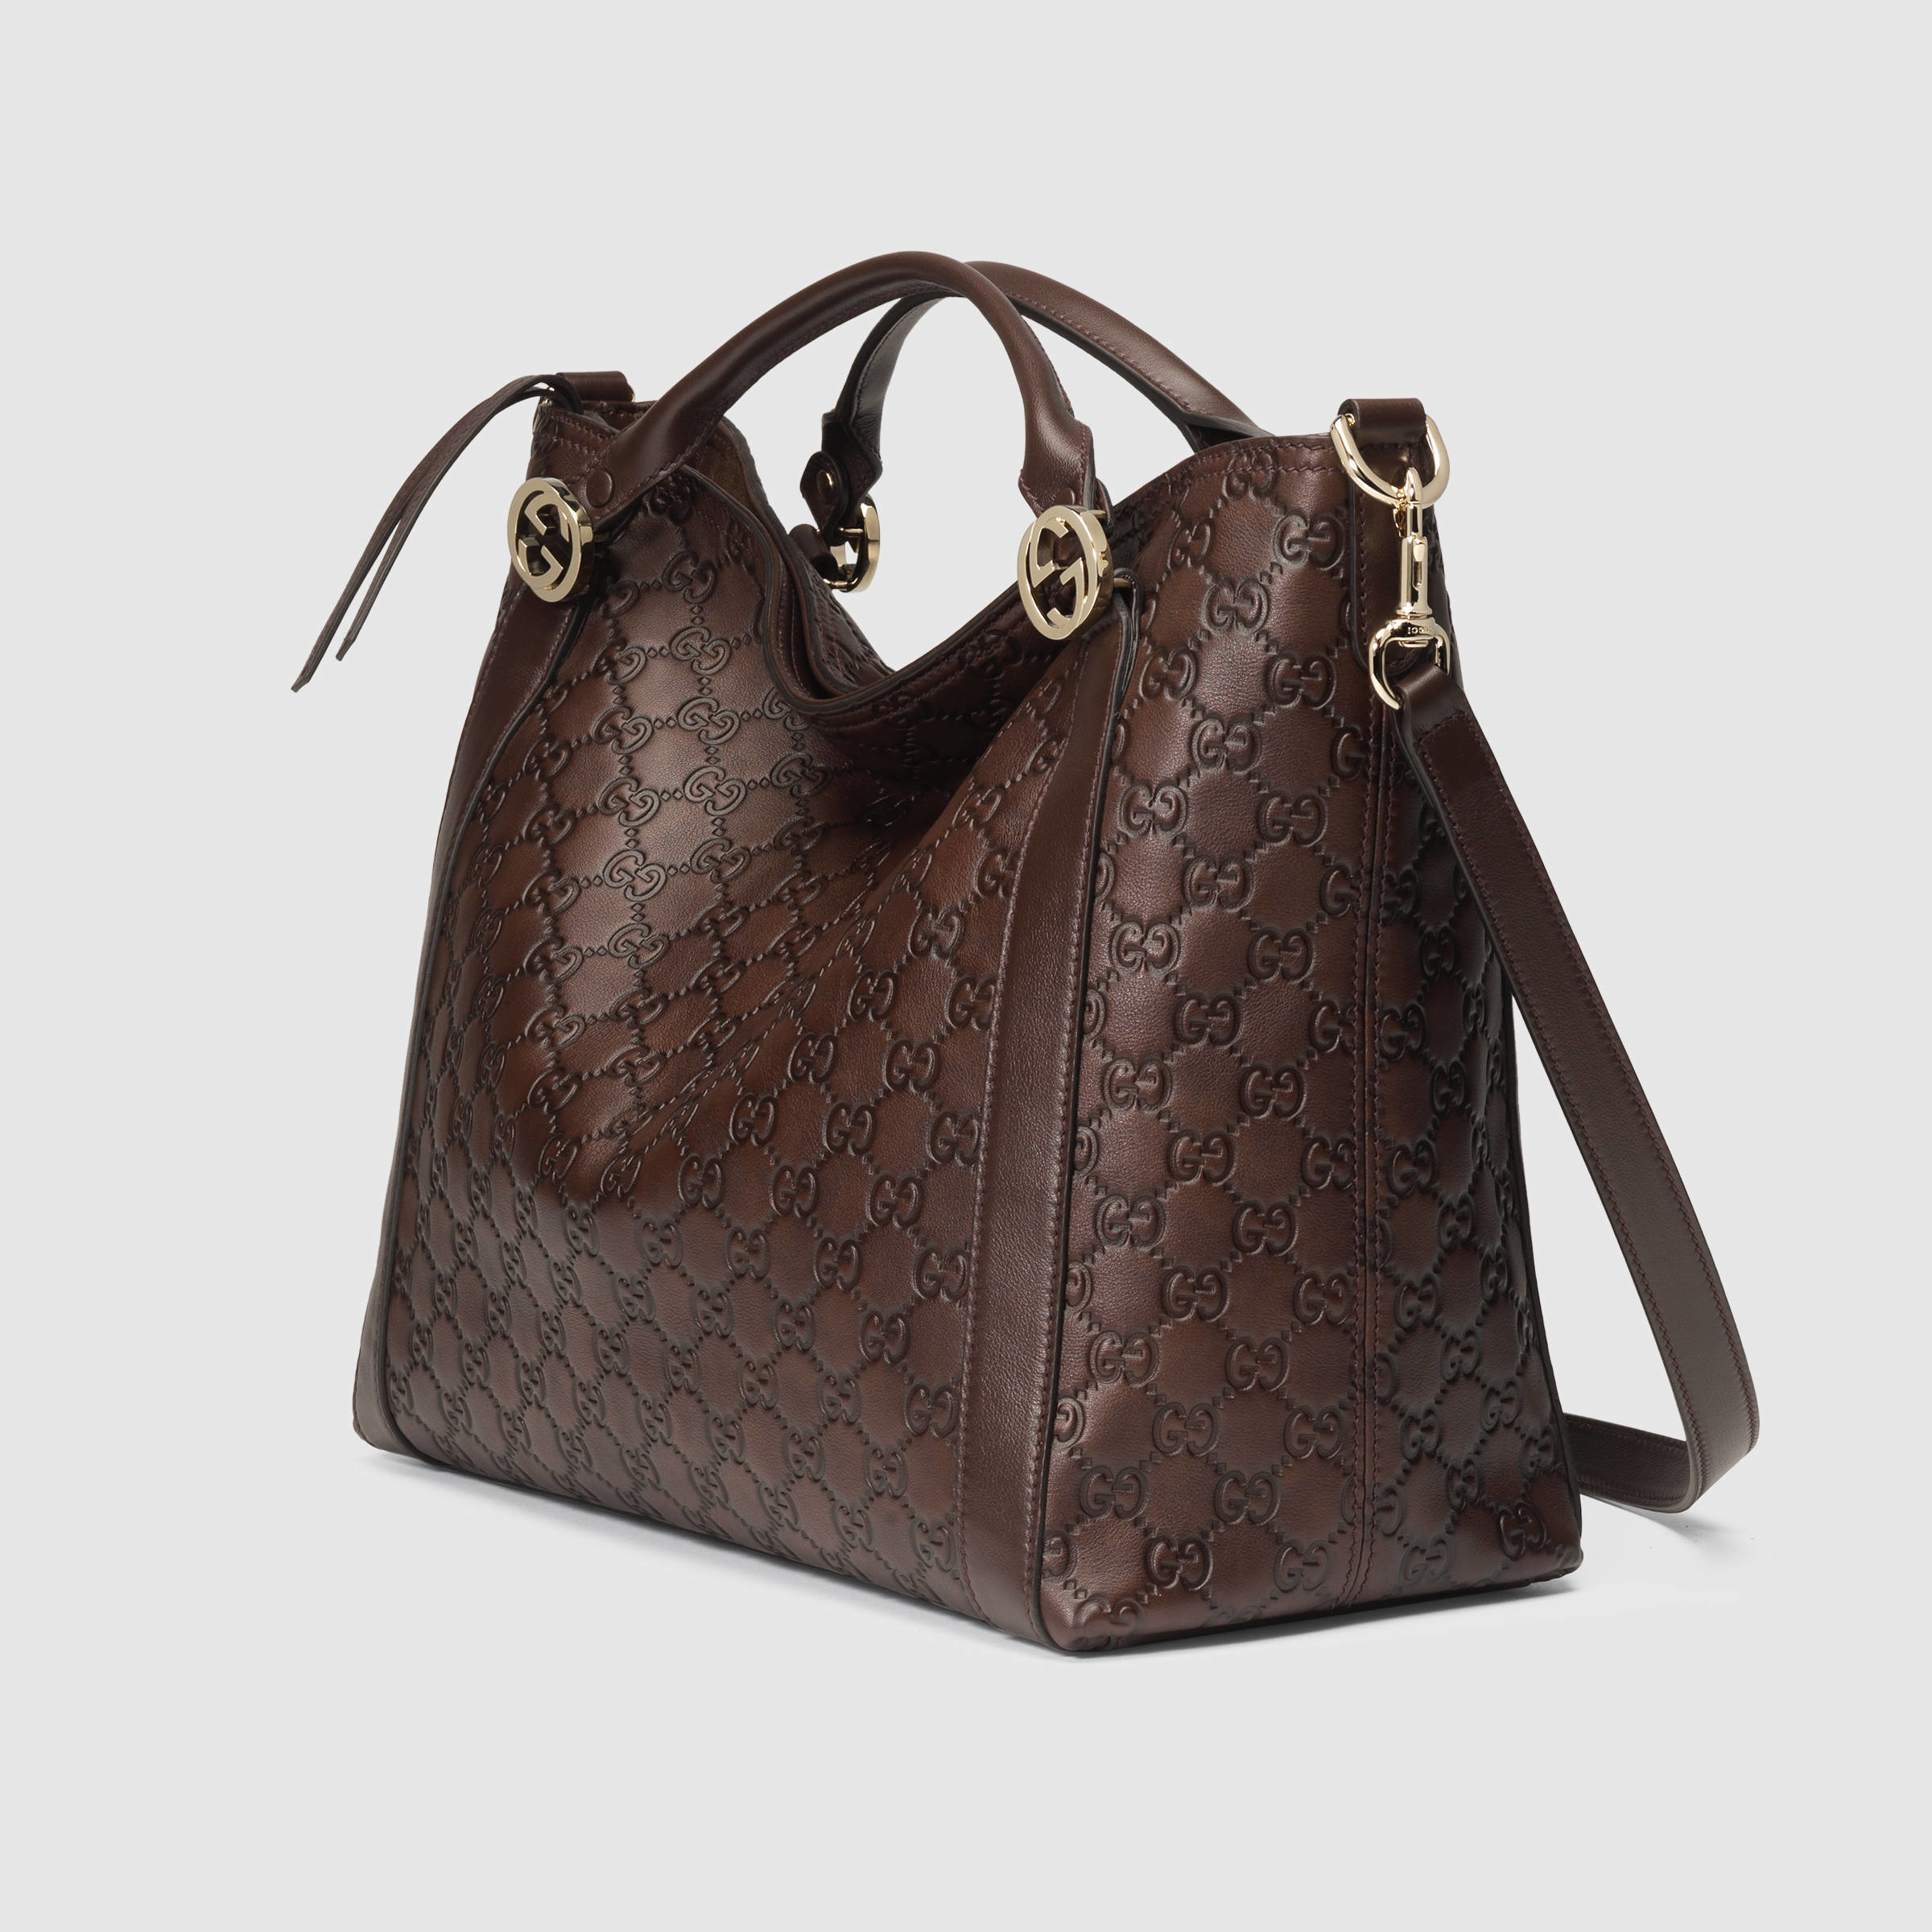 Brown Leather Gucci Purse - Best Purse Image Ccdbb.Org 3989514b8c59